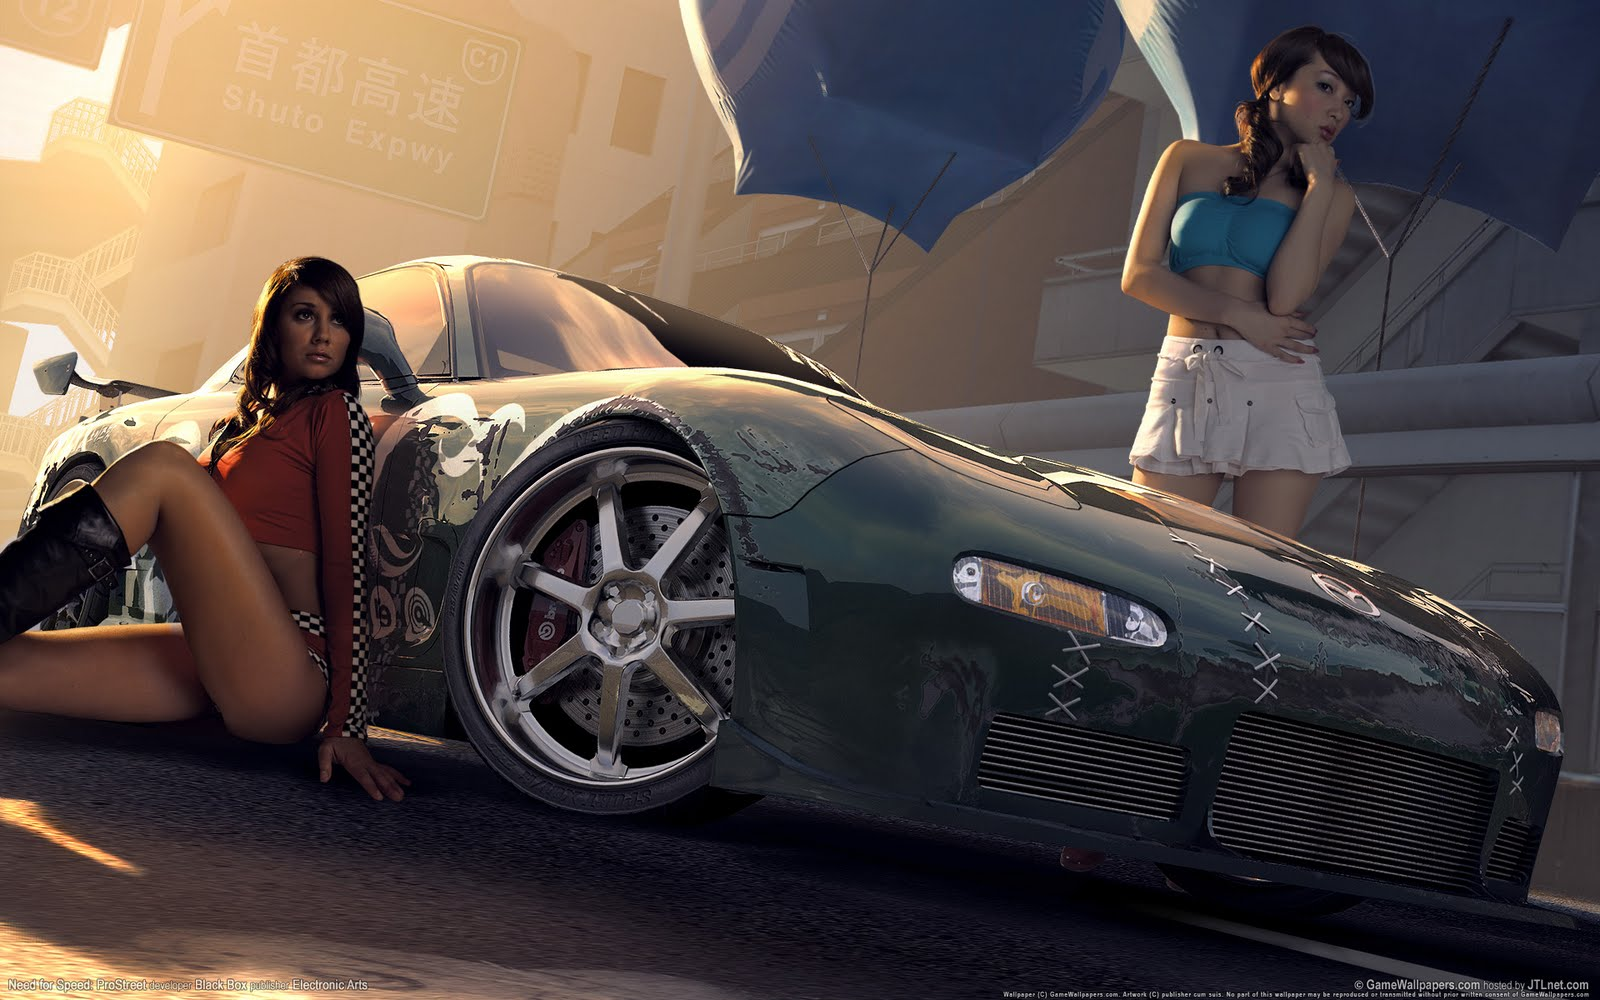 Ulgobang need for speed wallpapers hd need for speed wallpapers hd voltagebd Gallery